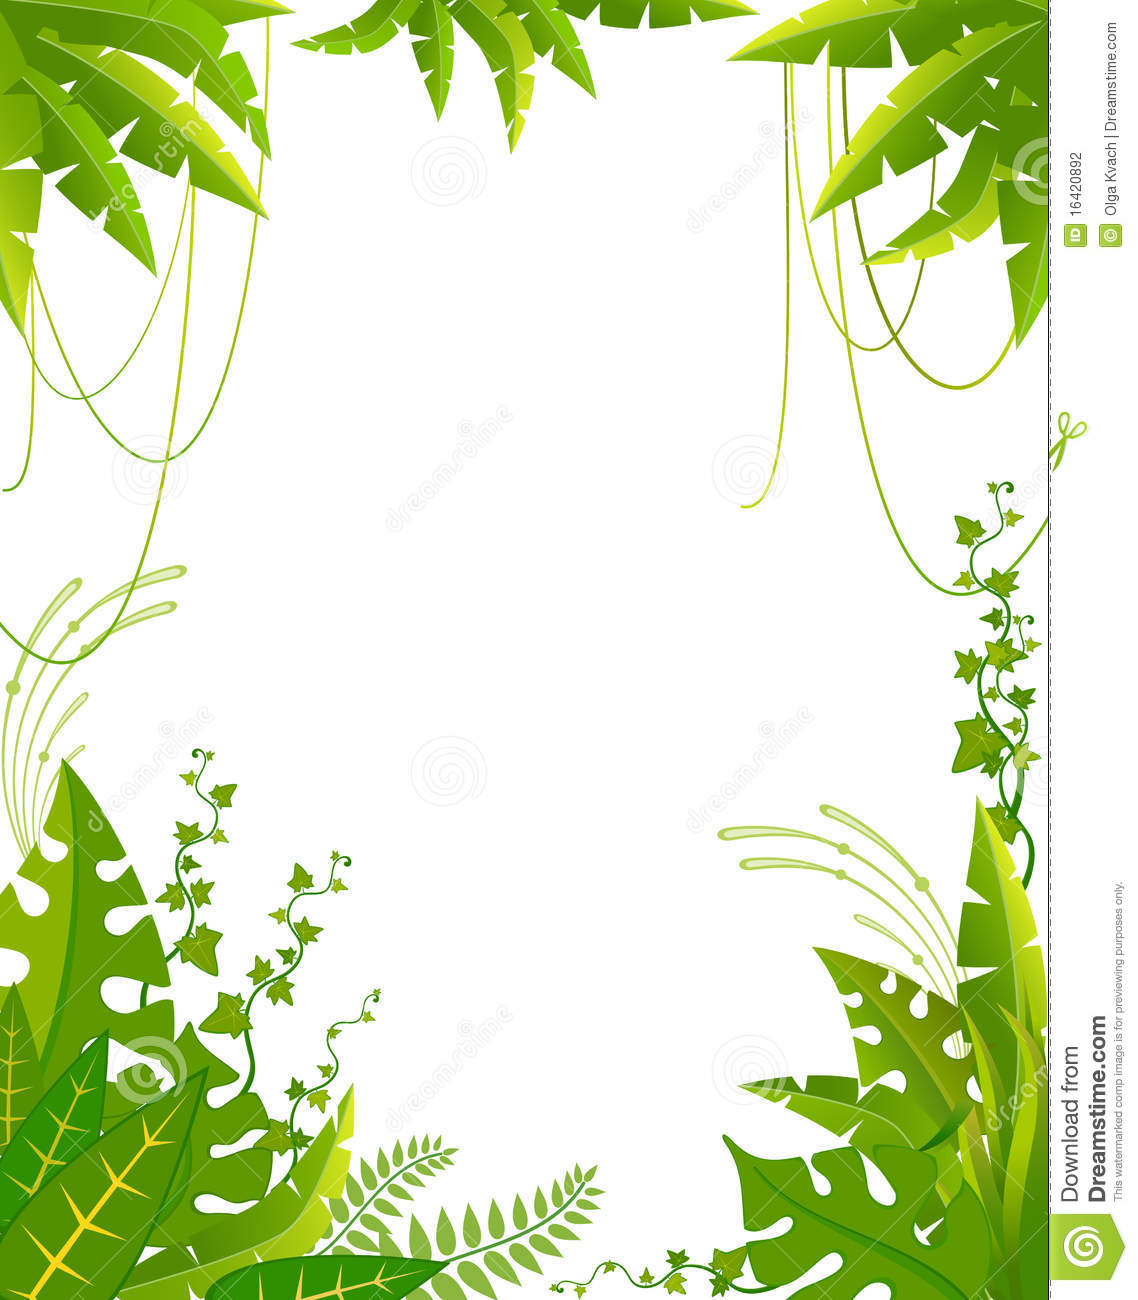 beautiful background with tropical plants stock goldfish clipart black and white goldfish clipart with black